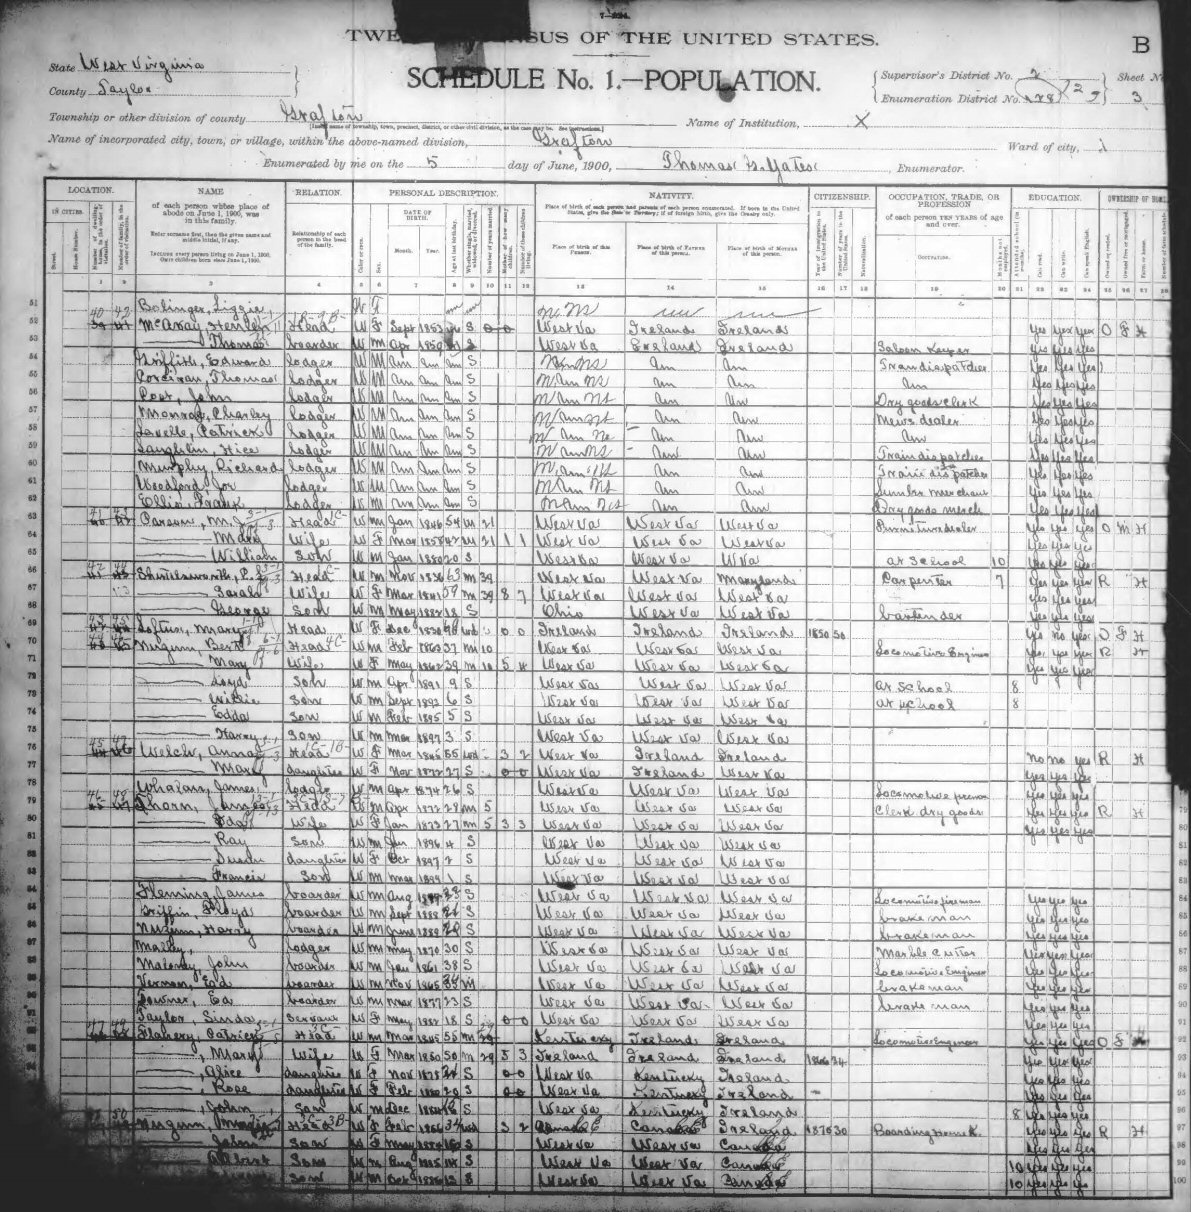 Taylor County WV 1900 TV Census Index – Irs Insolvency Worksheet